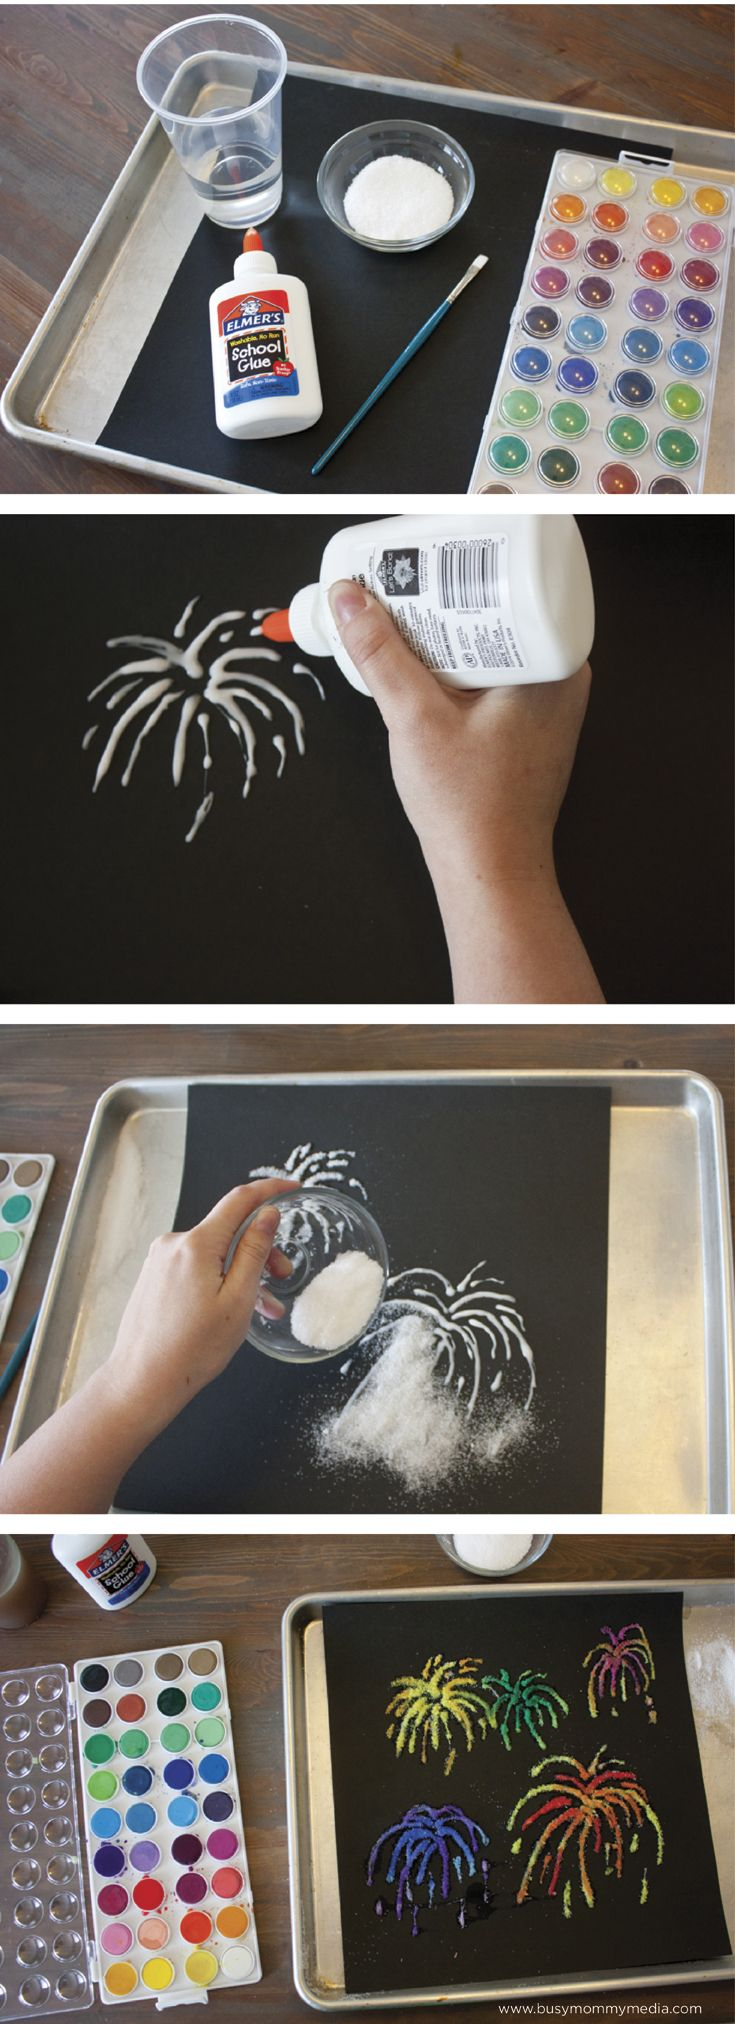 Salt Painting - This is such a cool project! I love that it only uses a few materials and it looks so fun!: